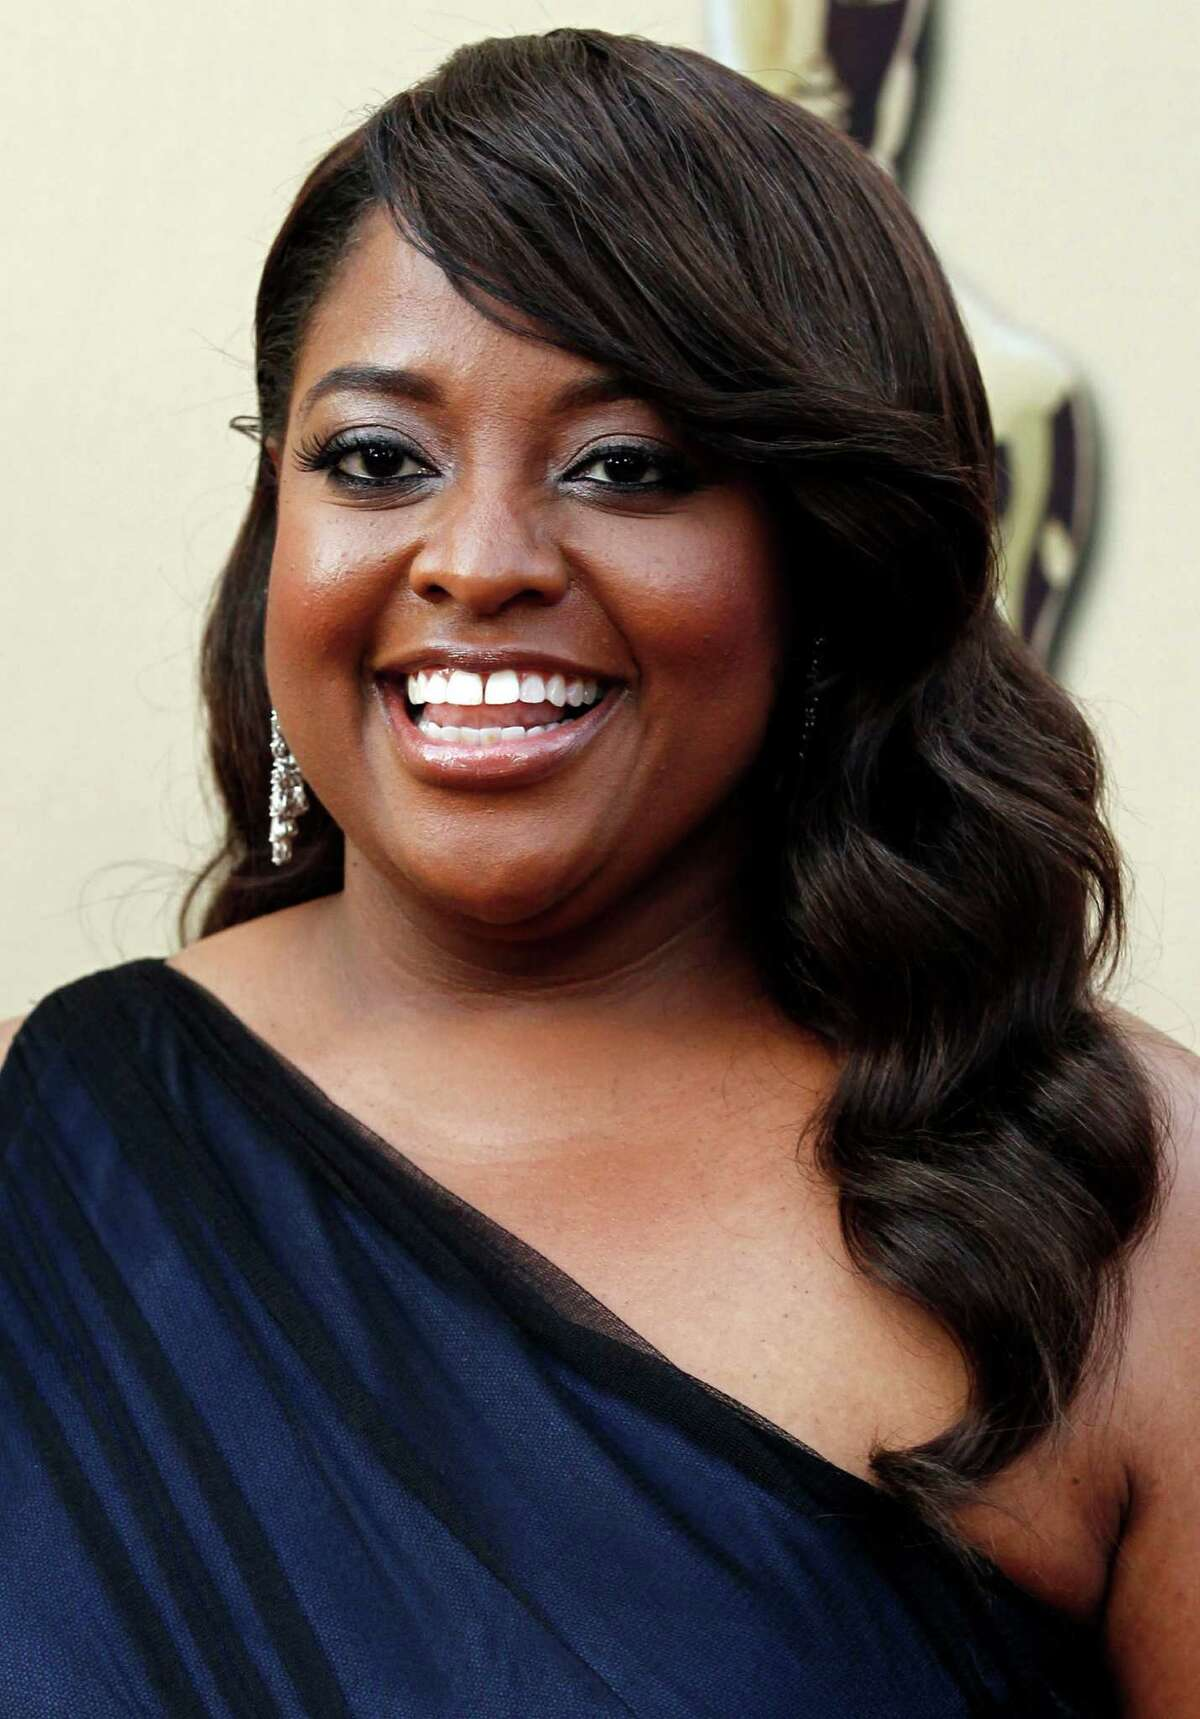 FILE - In this March 7, 2010 file photo, Sherri Shepherd arrives during the 82nd Academy Awards in the Hollywood section of Los Angeles.